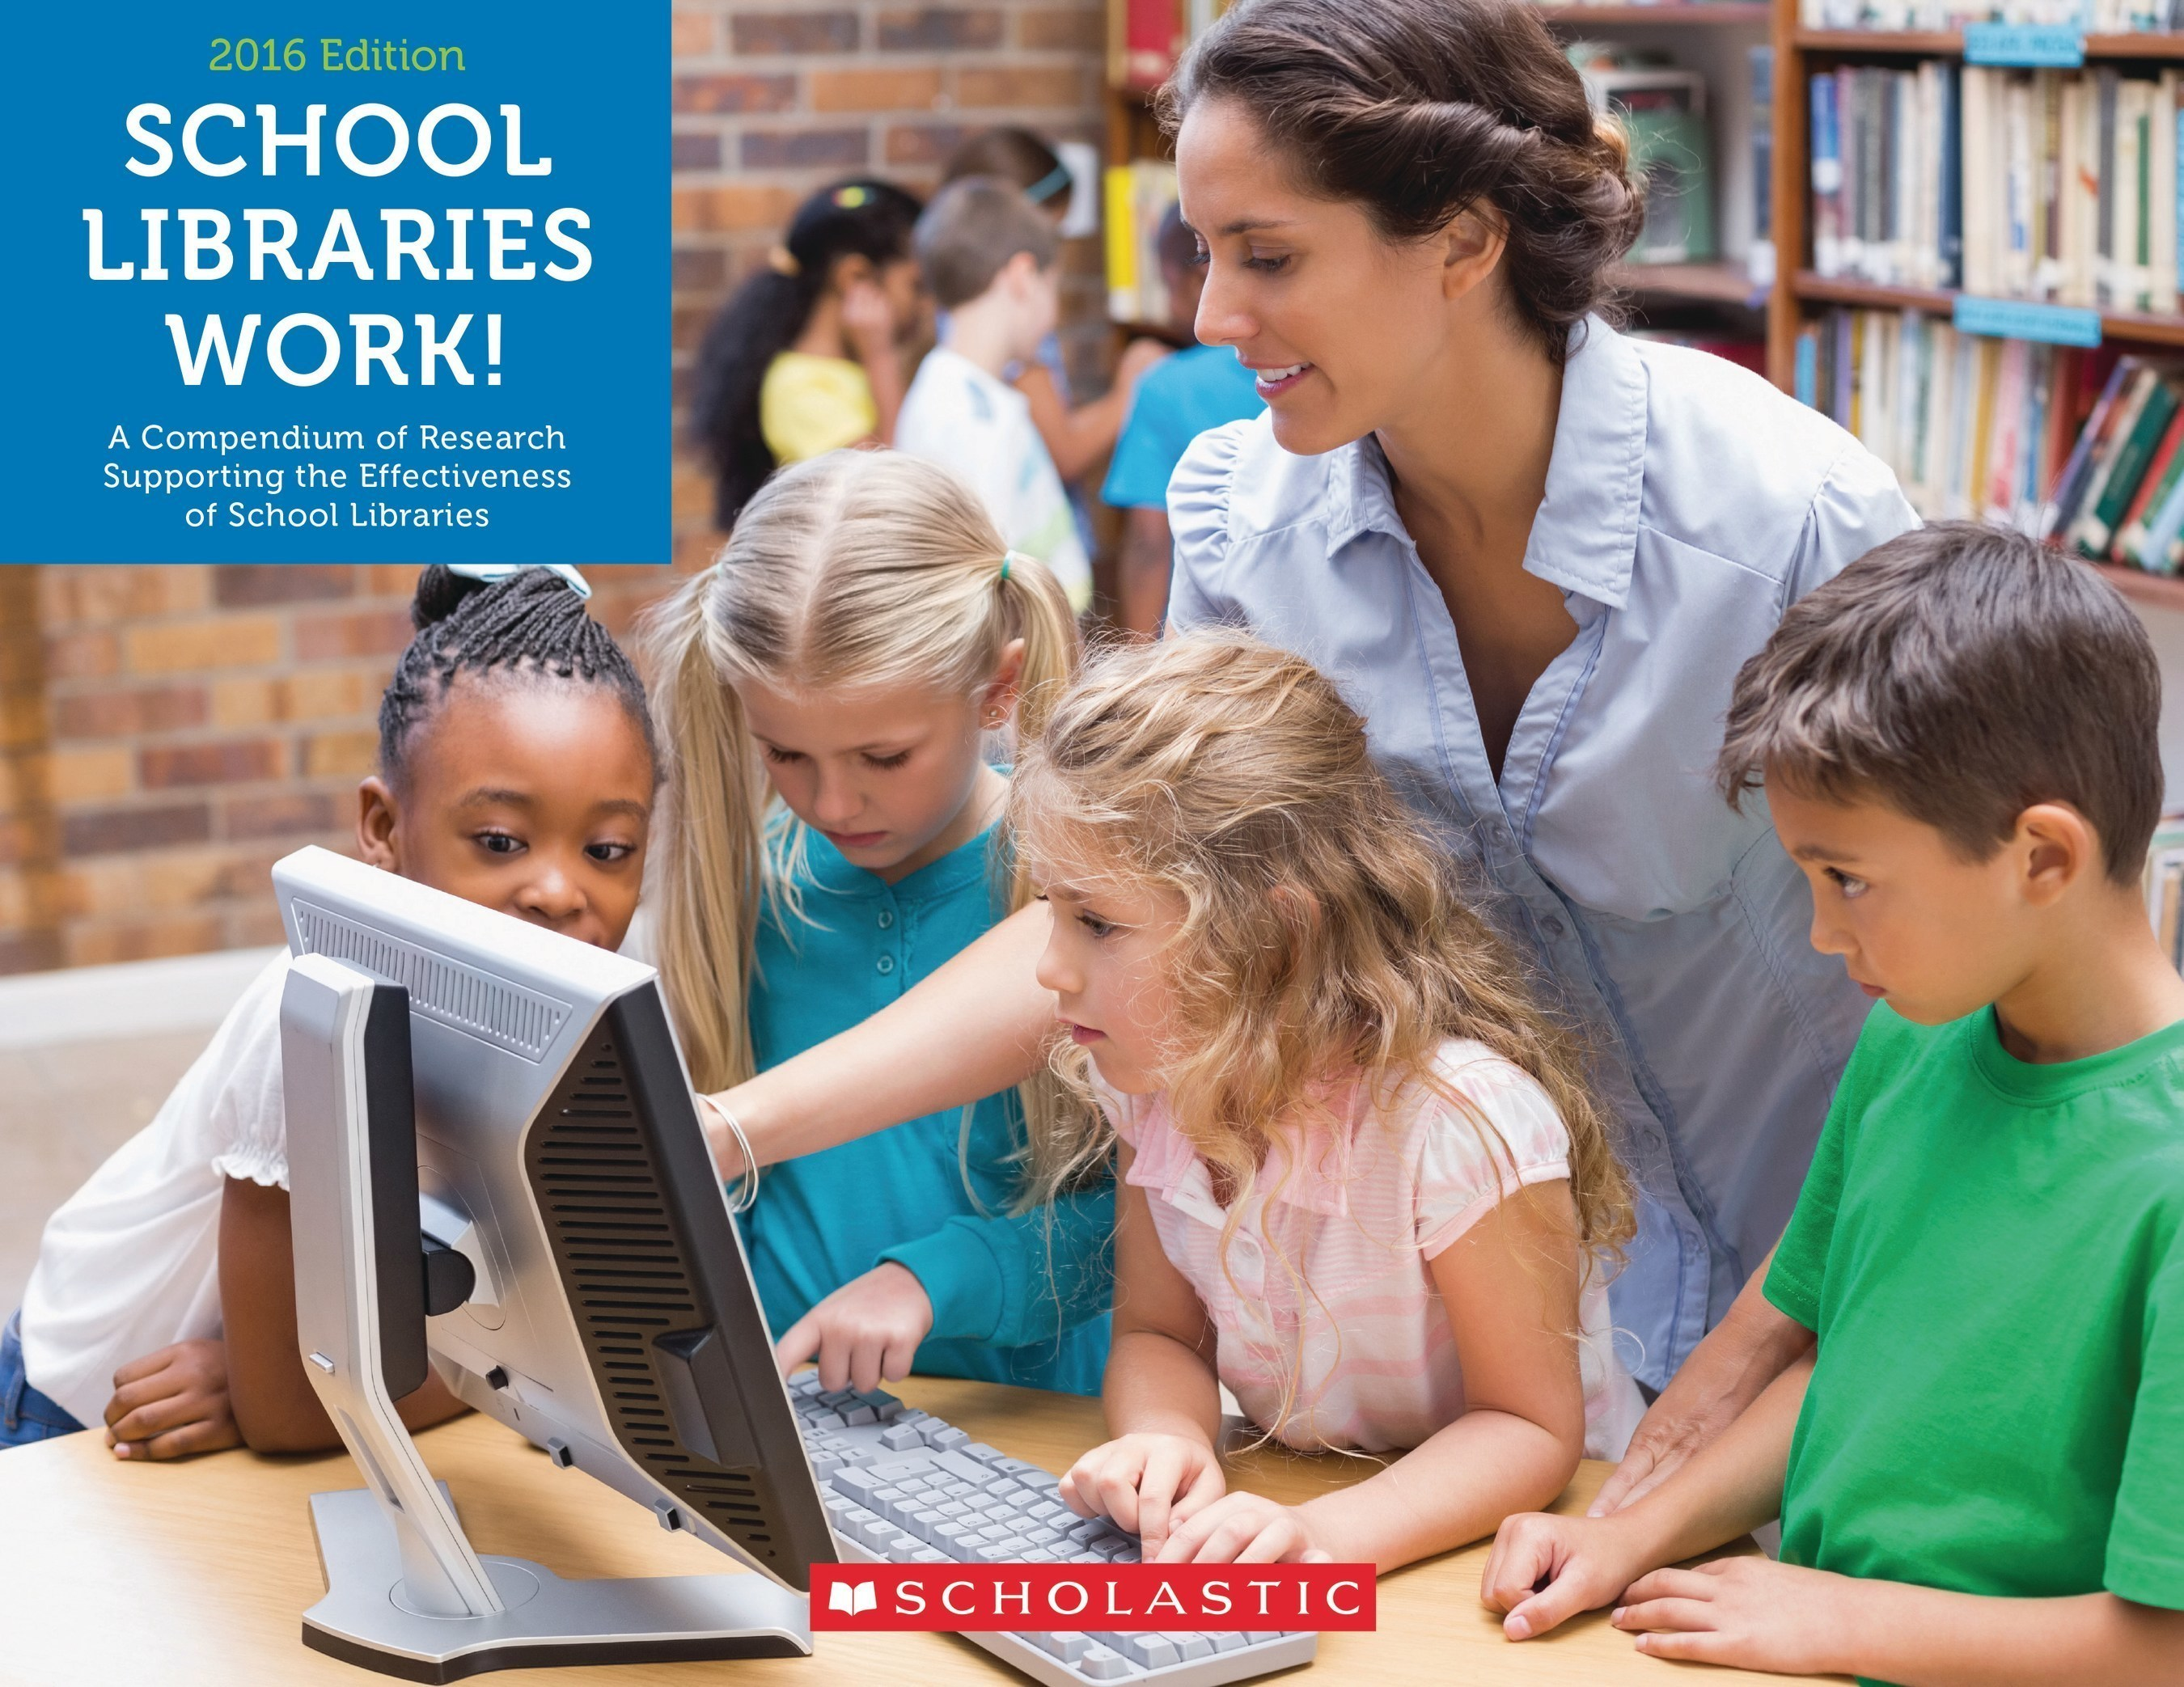 New Research Report from Scholastic Confirms the Importance of School Libraries and Librarians